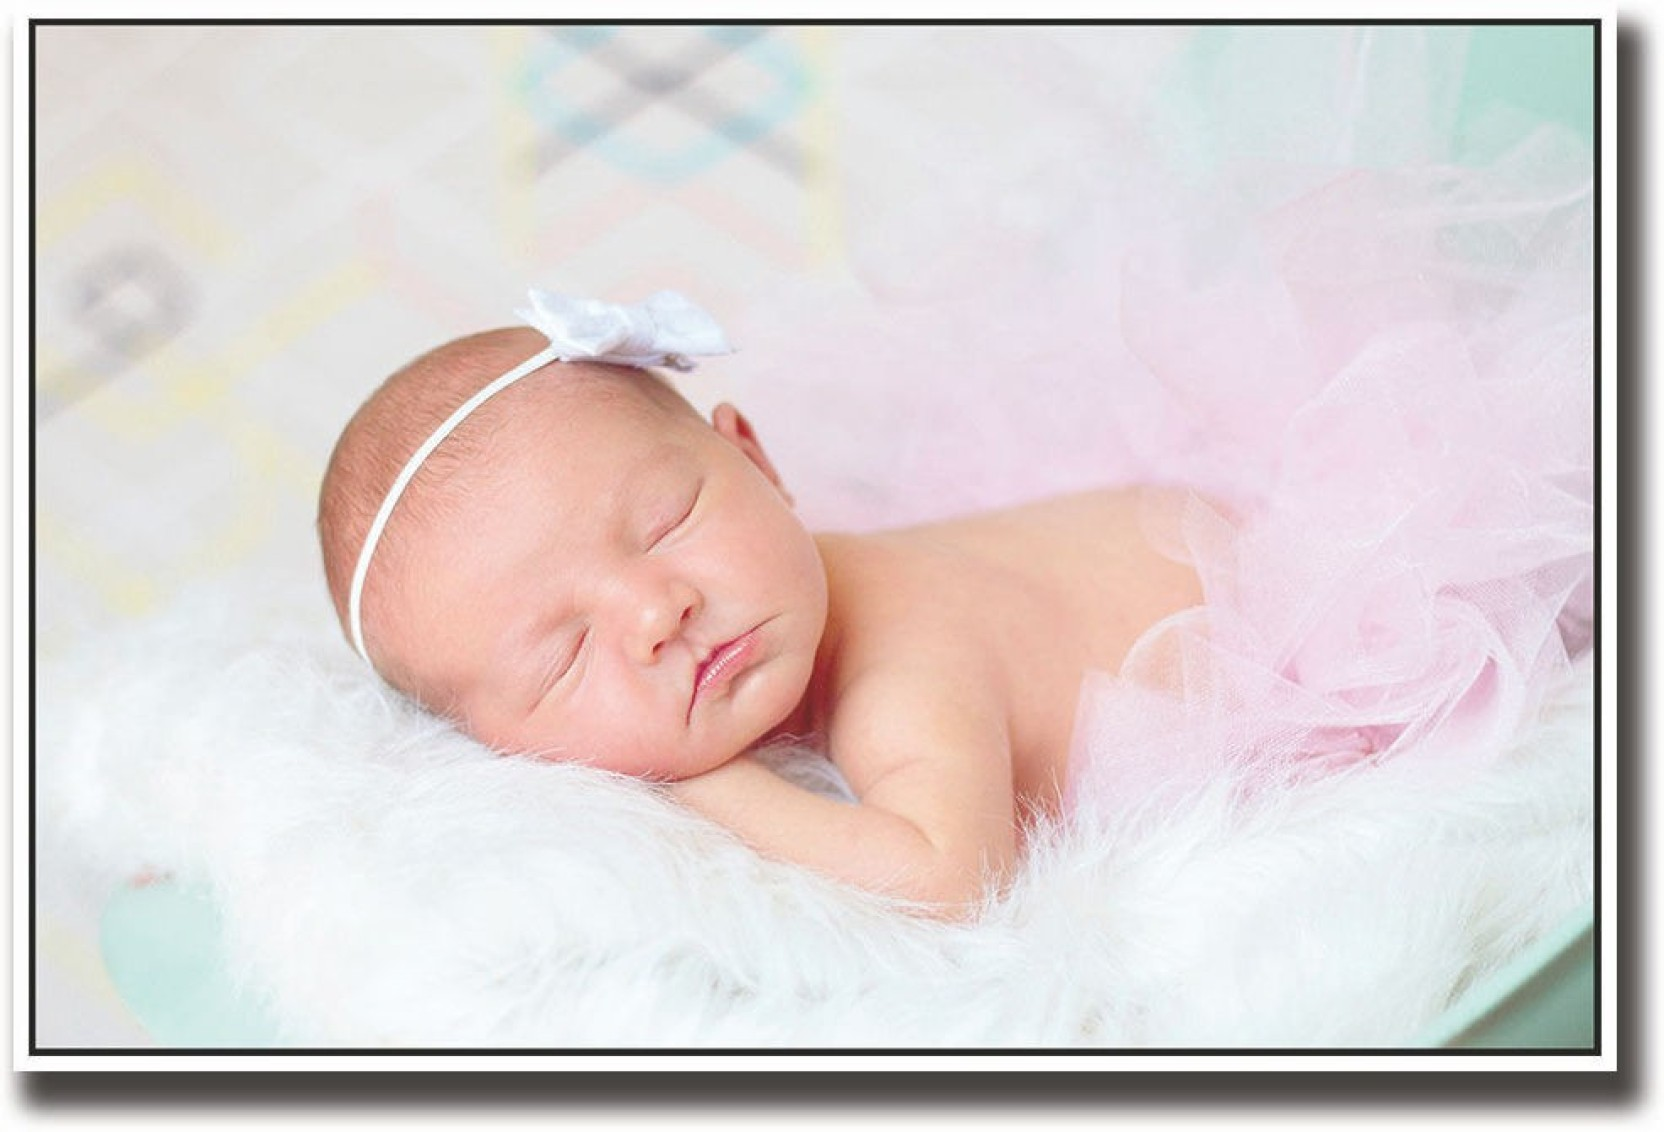 cute expression baby image fine art print - children posters in